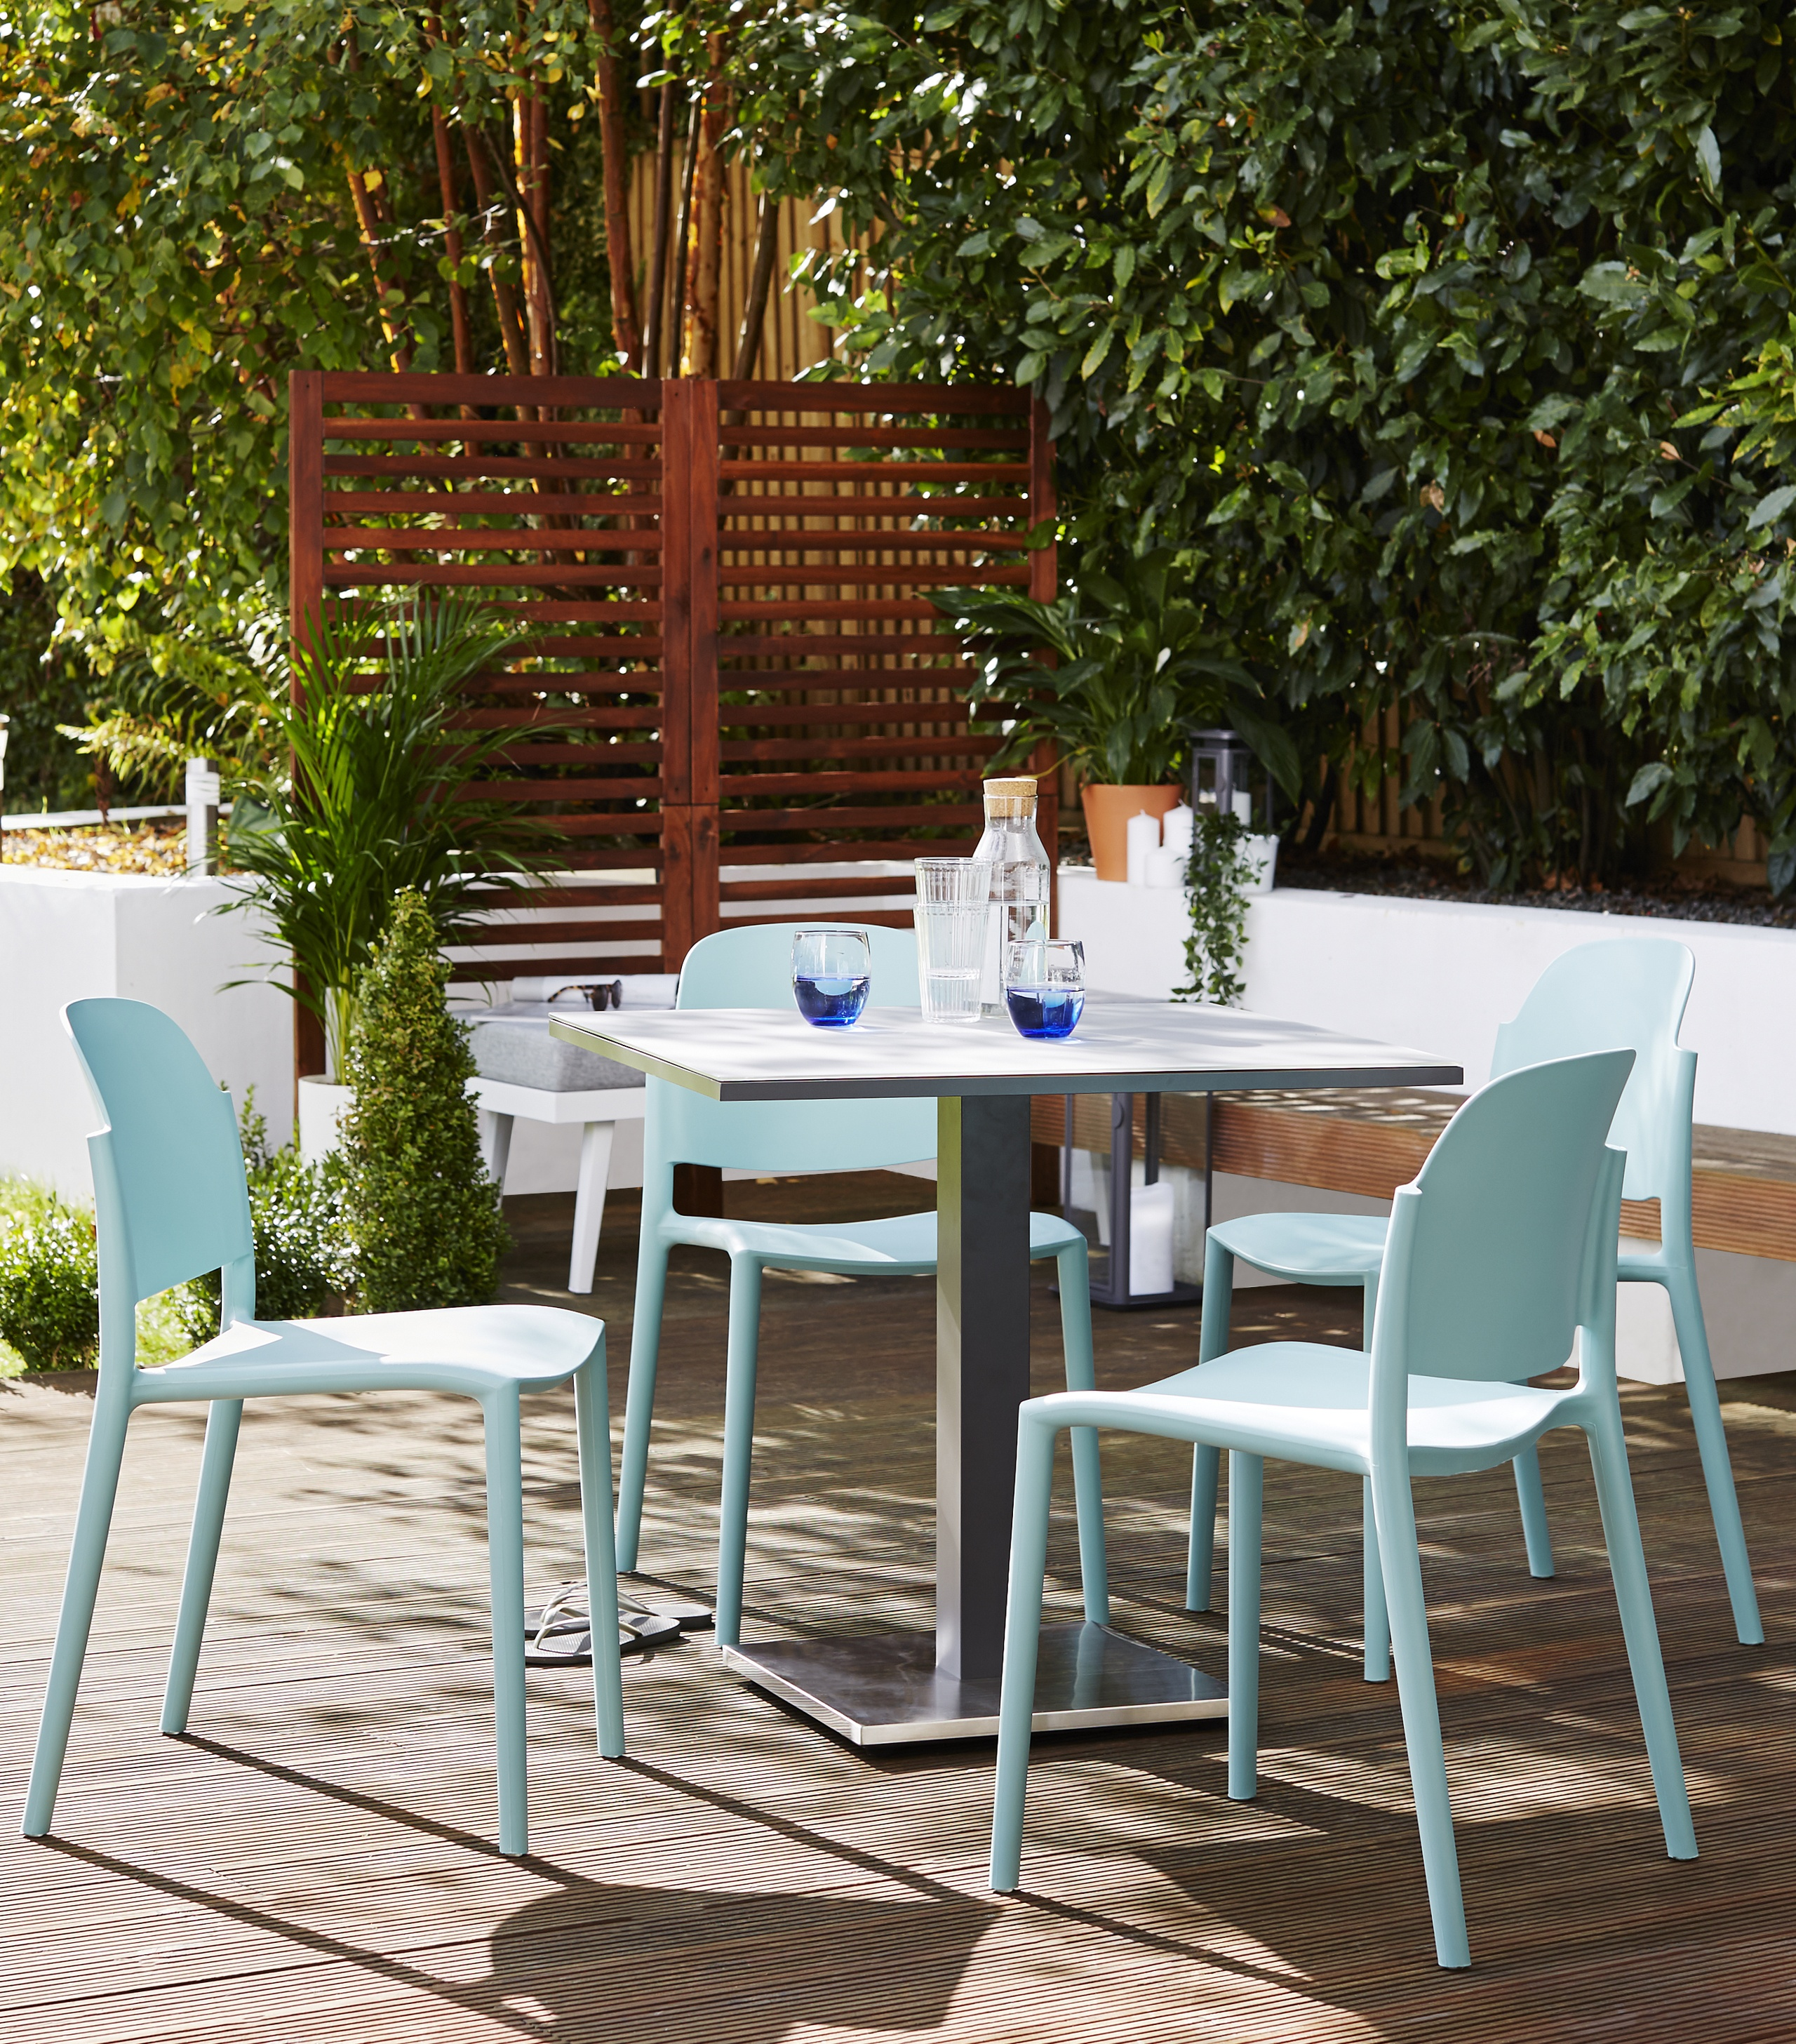 7 Outdoor Furniture Buying Mistakes You'll Want To Avoid! Image: Palermo Grey Pedestal Table and Lola Small Dining Set